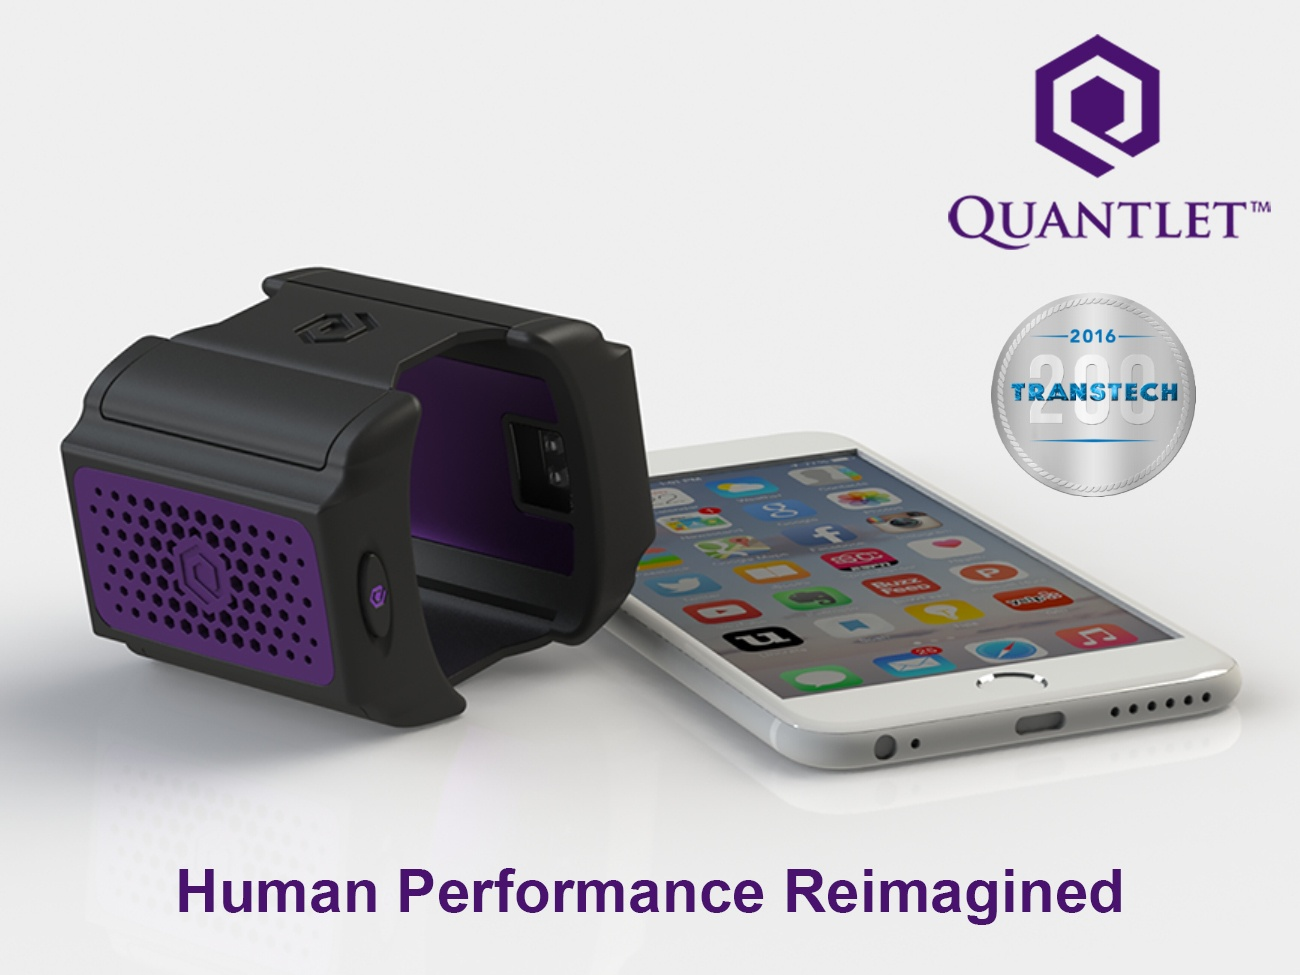 The Quantlet – Human Performance Reimagined